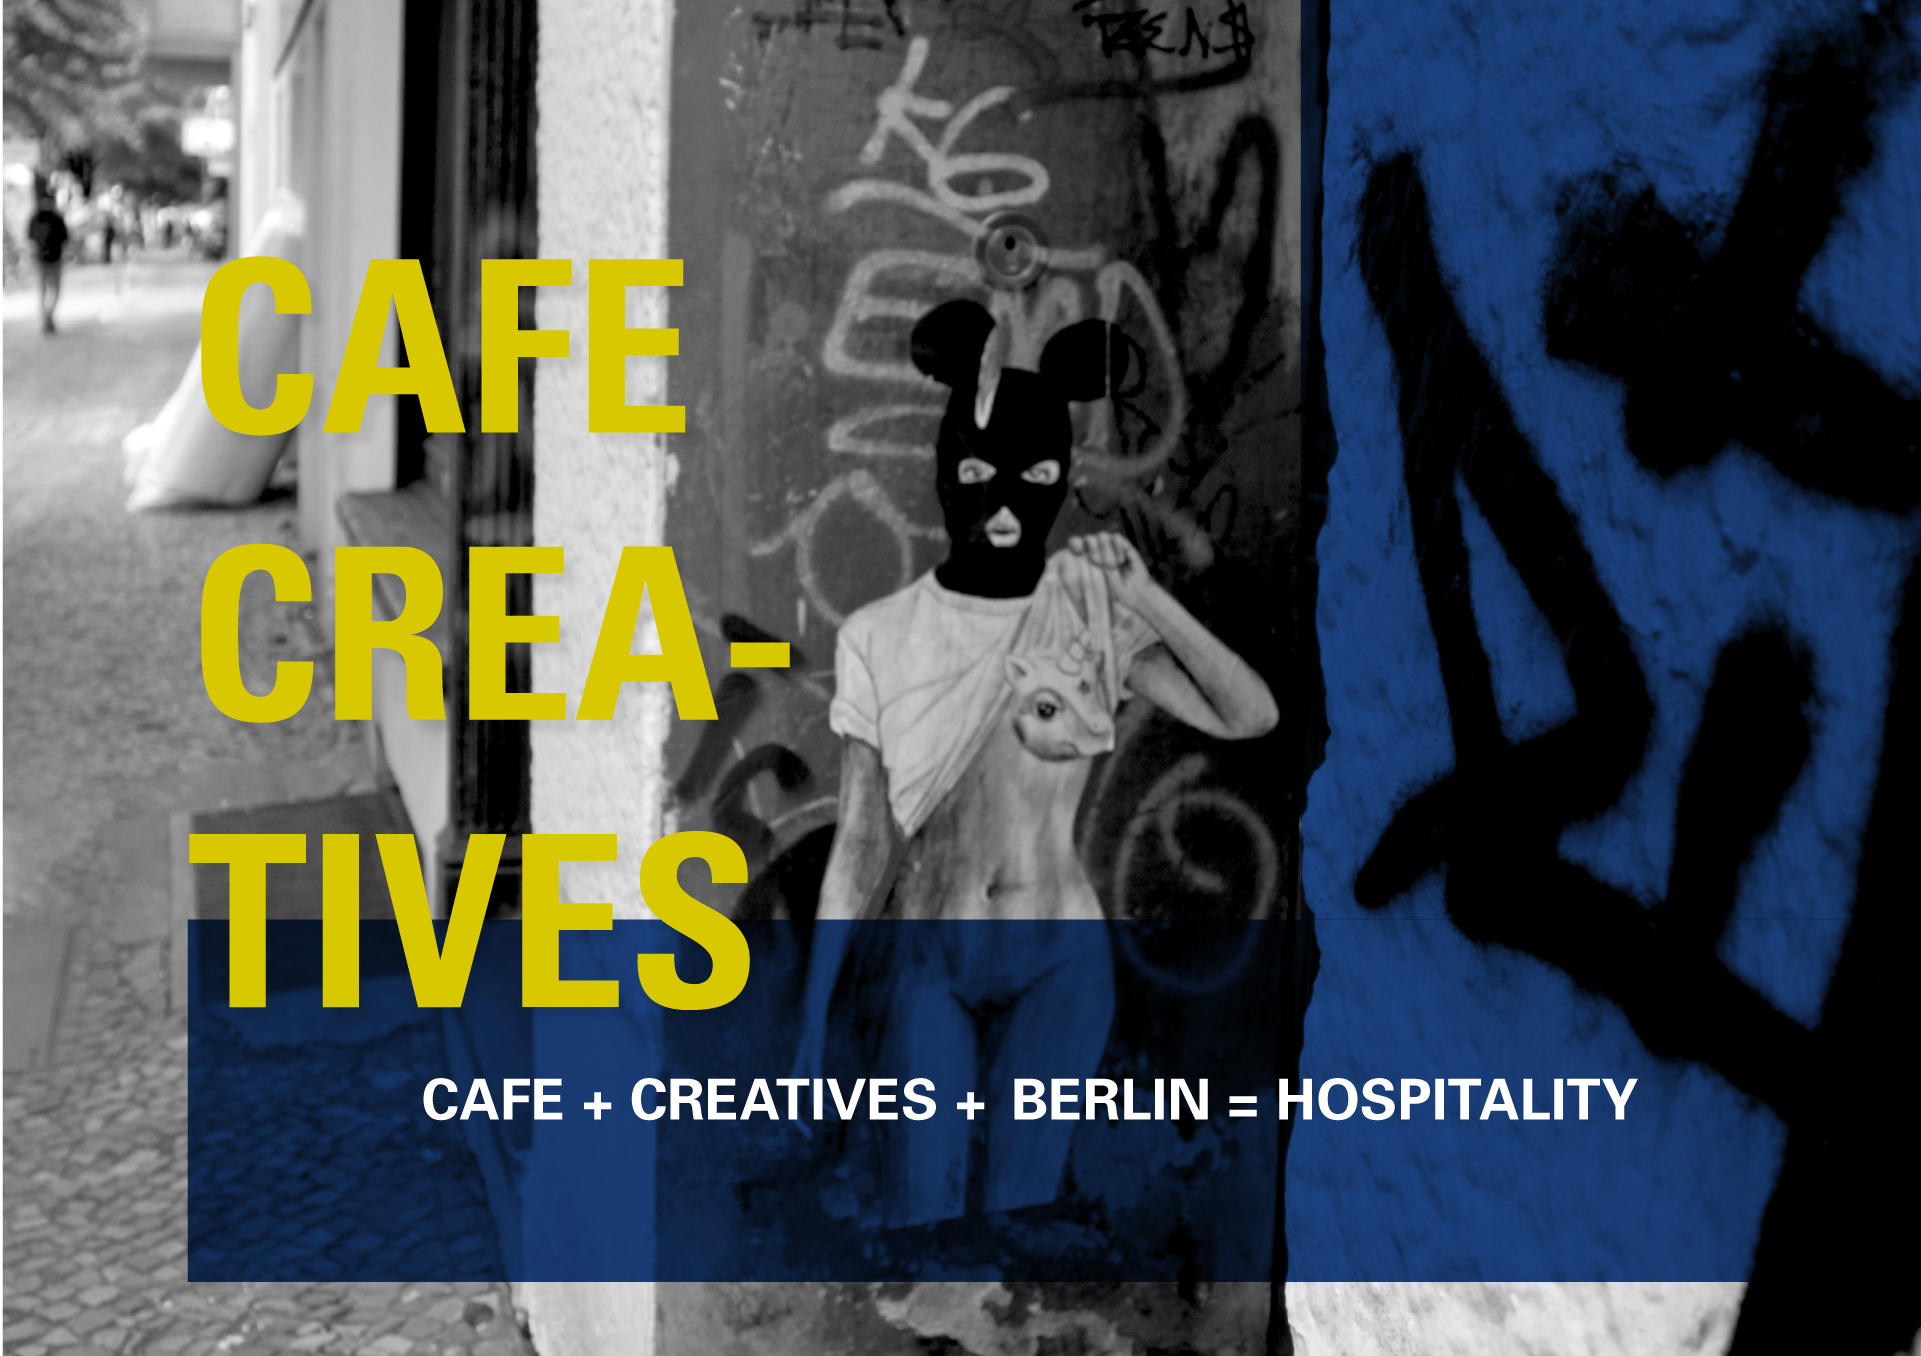 """THE PROJECT   Reimagine hospitality. Think of a way to design a hospitality experience for creatives.For those who criticize over design. How do we introduce a hospitality experience for """"tourists"""" while preserving Berlin's unique embrace of its small creative industries that gives creatives a place to """"live to work, not work to live."""""""